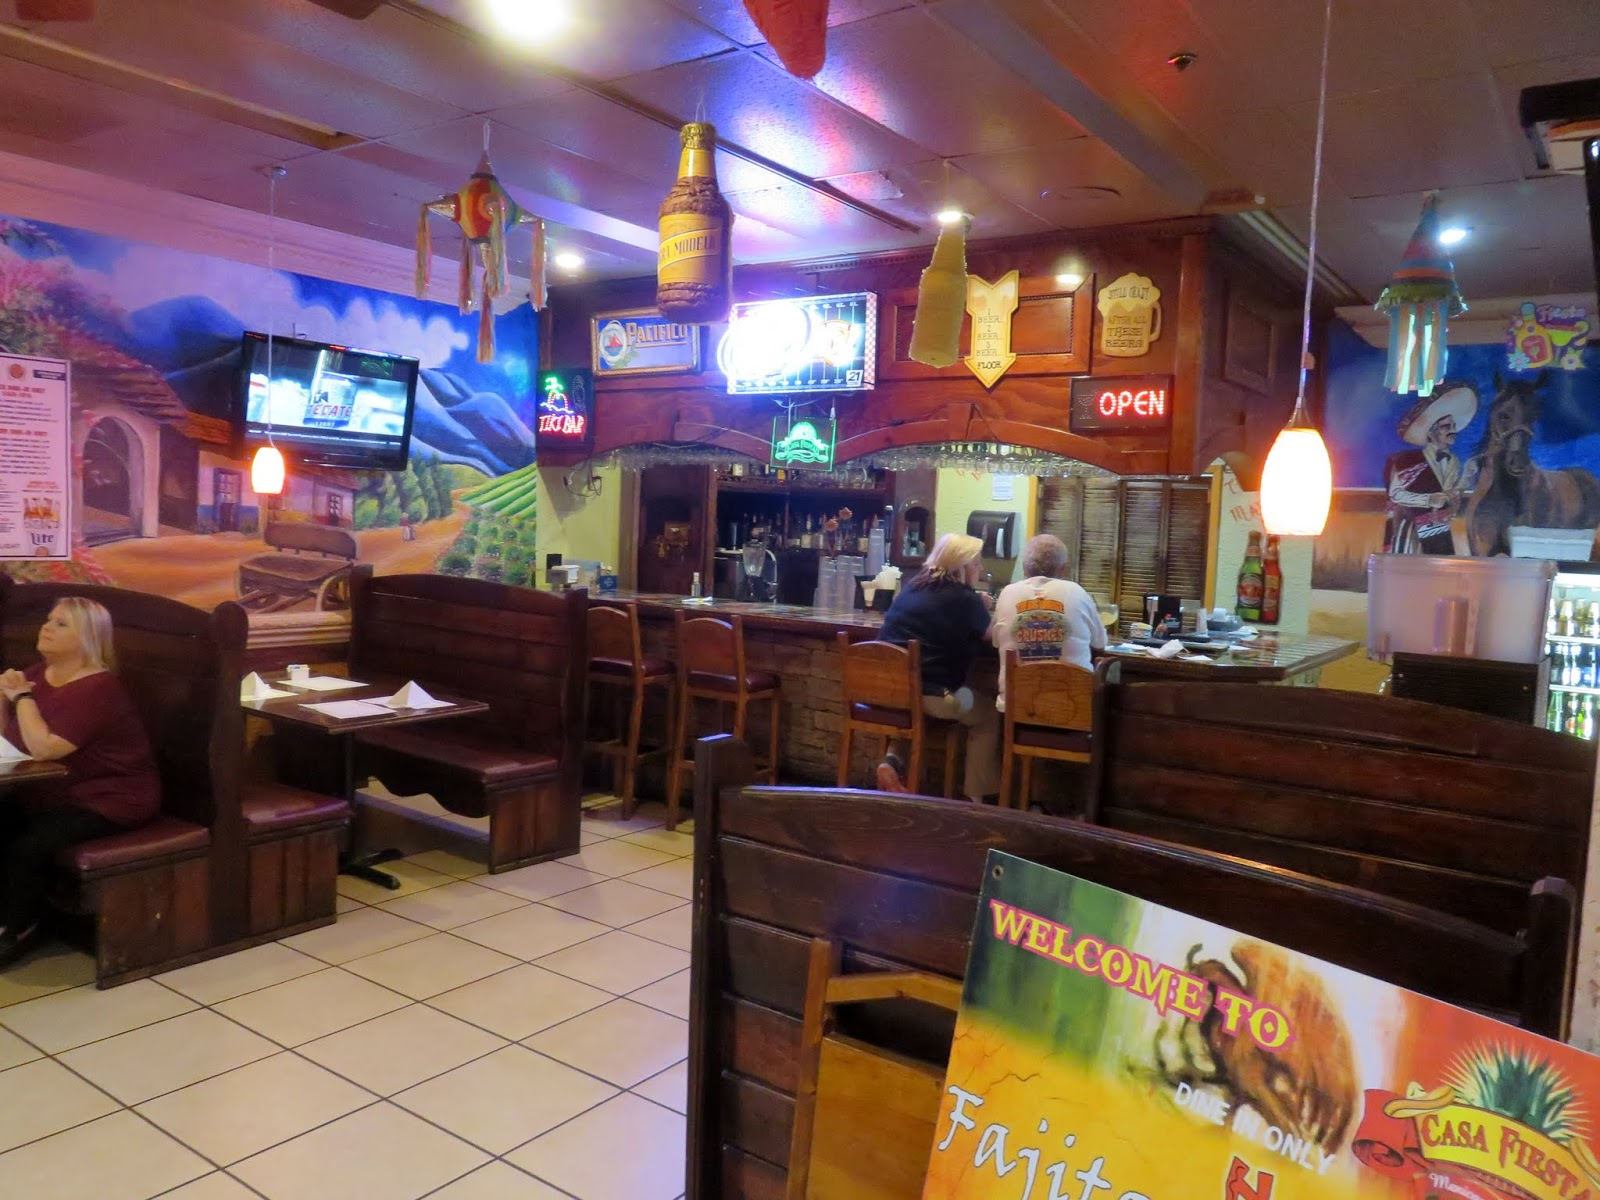 The Other Side Of Casa Fiesta Has A Smaller Dining Area And Small Bar As With Most Mexican Restaurants Décor Is Colorful Upbeat